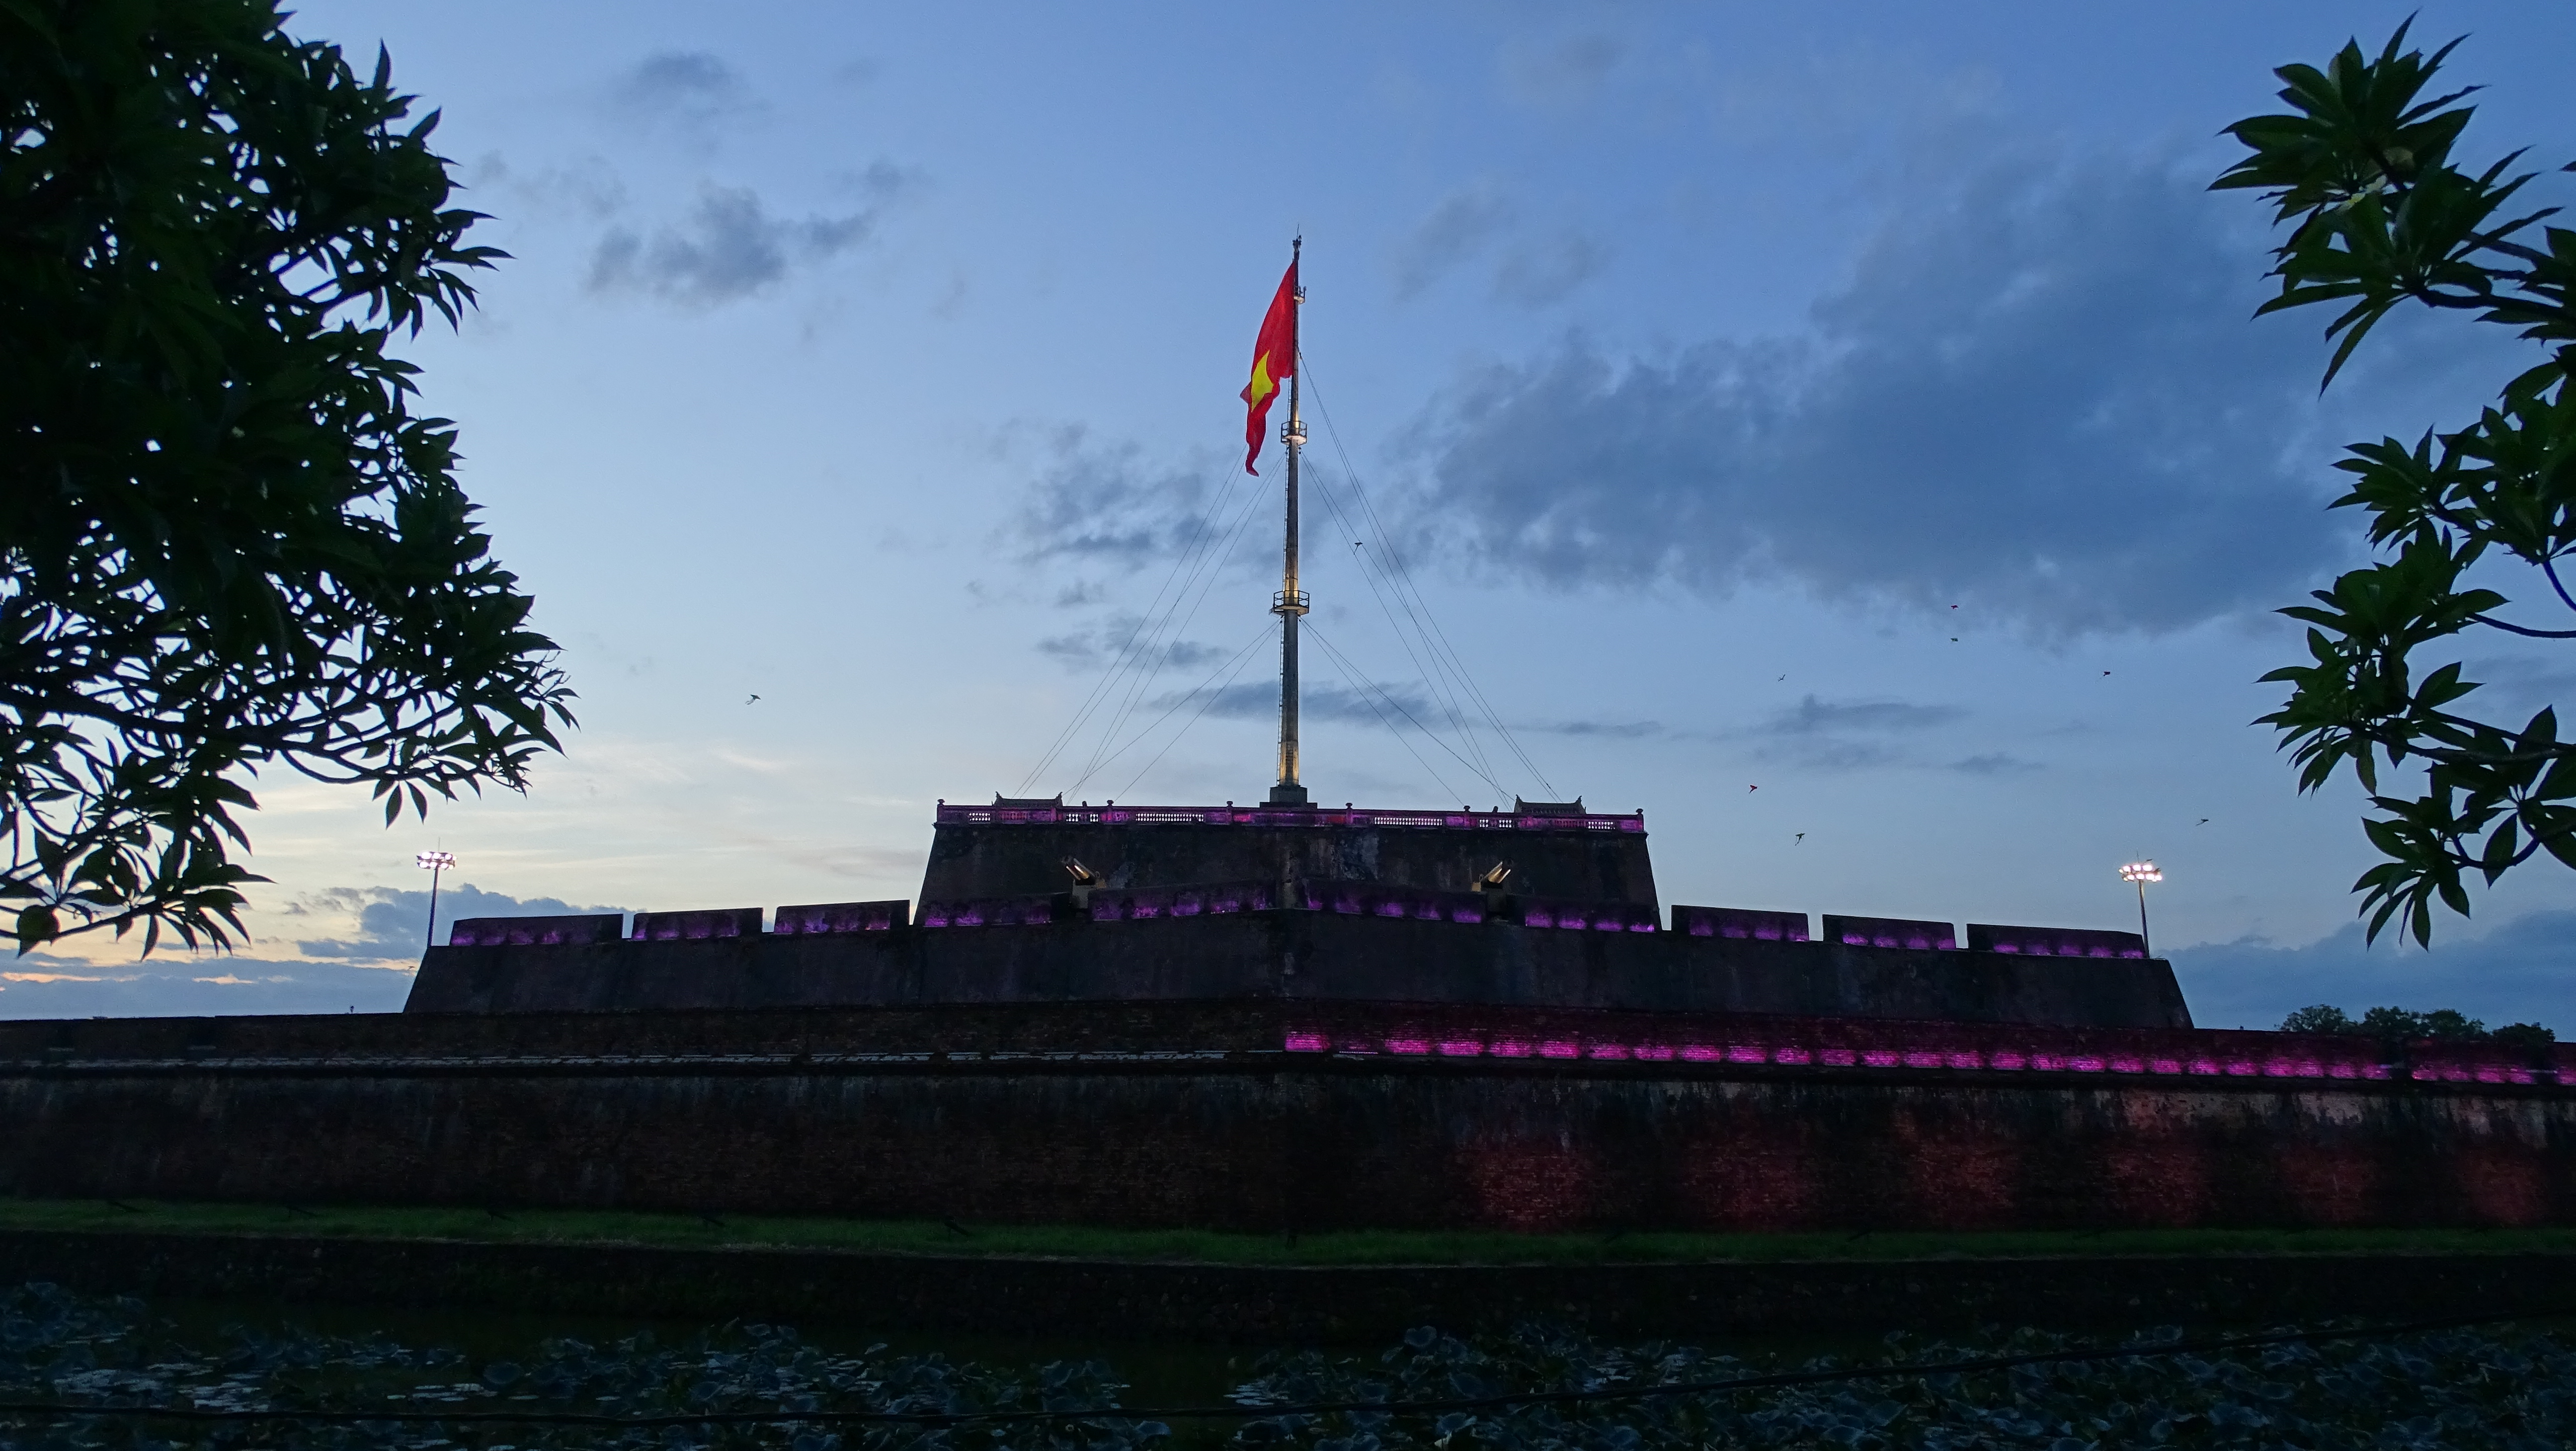 The  enormous flagpost at the Hue citadel at night